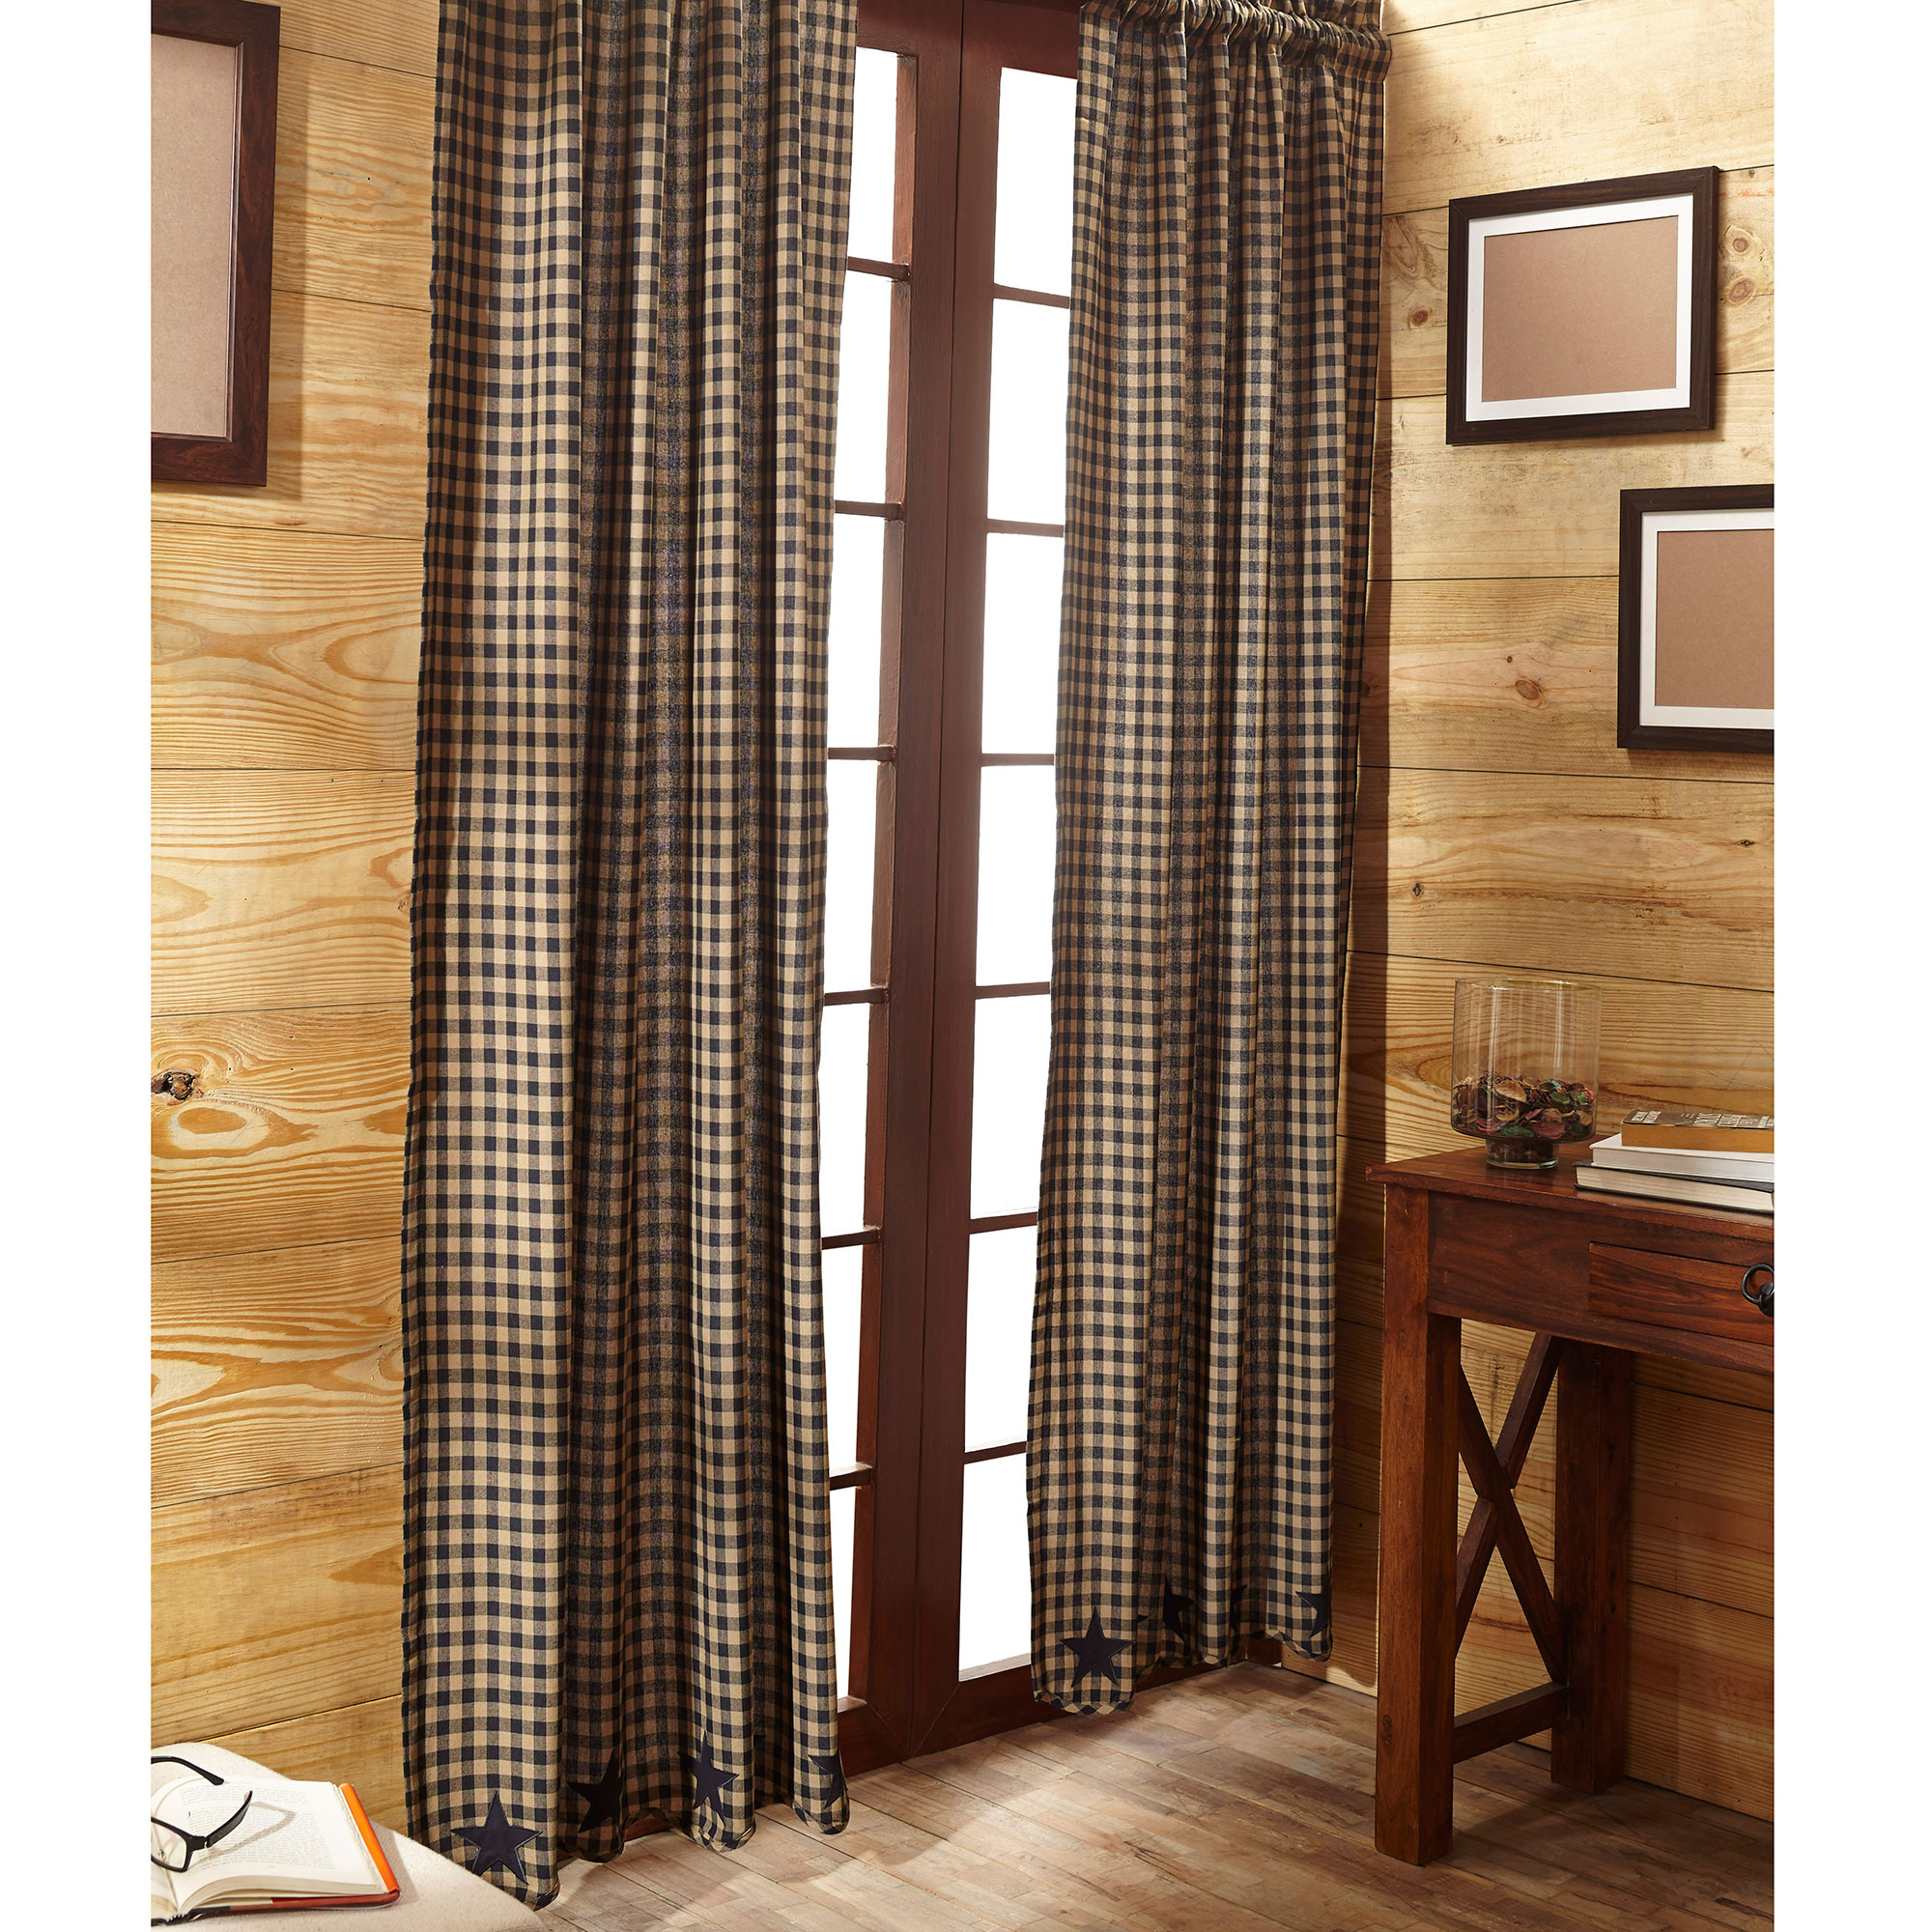 in pinterest standard bathroom curtains the long decor curtain extra straight lavender coral mi with navy for hookless target about silver ideas rod wall awesome grey on iron shower liner tan sho and blue size